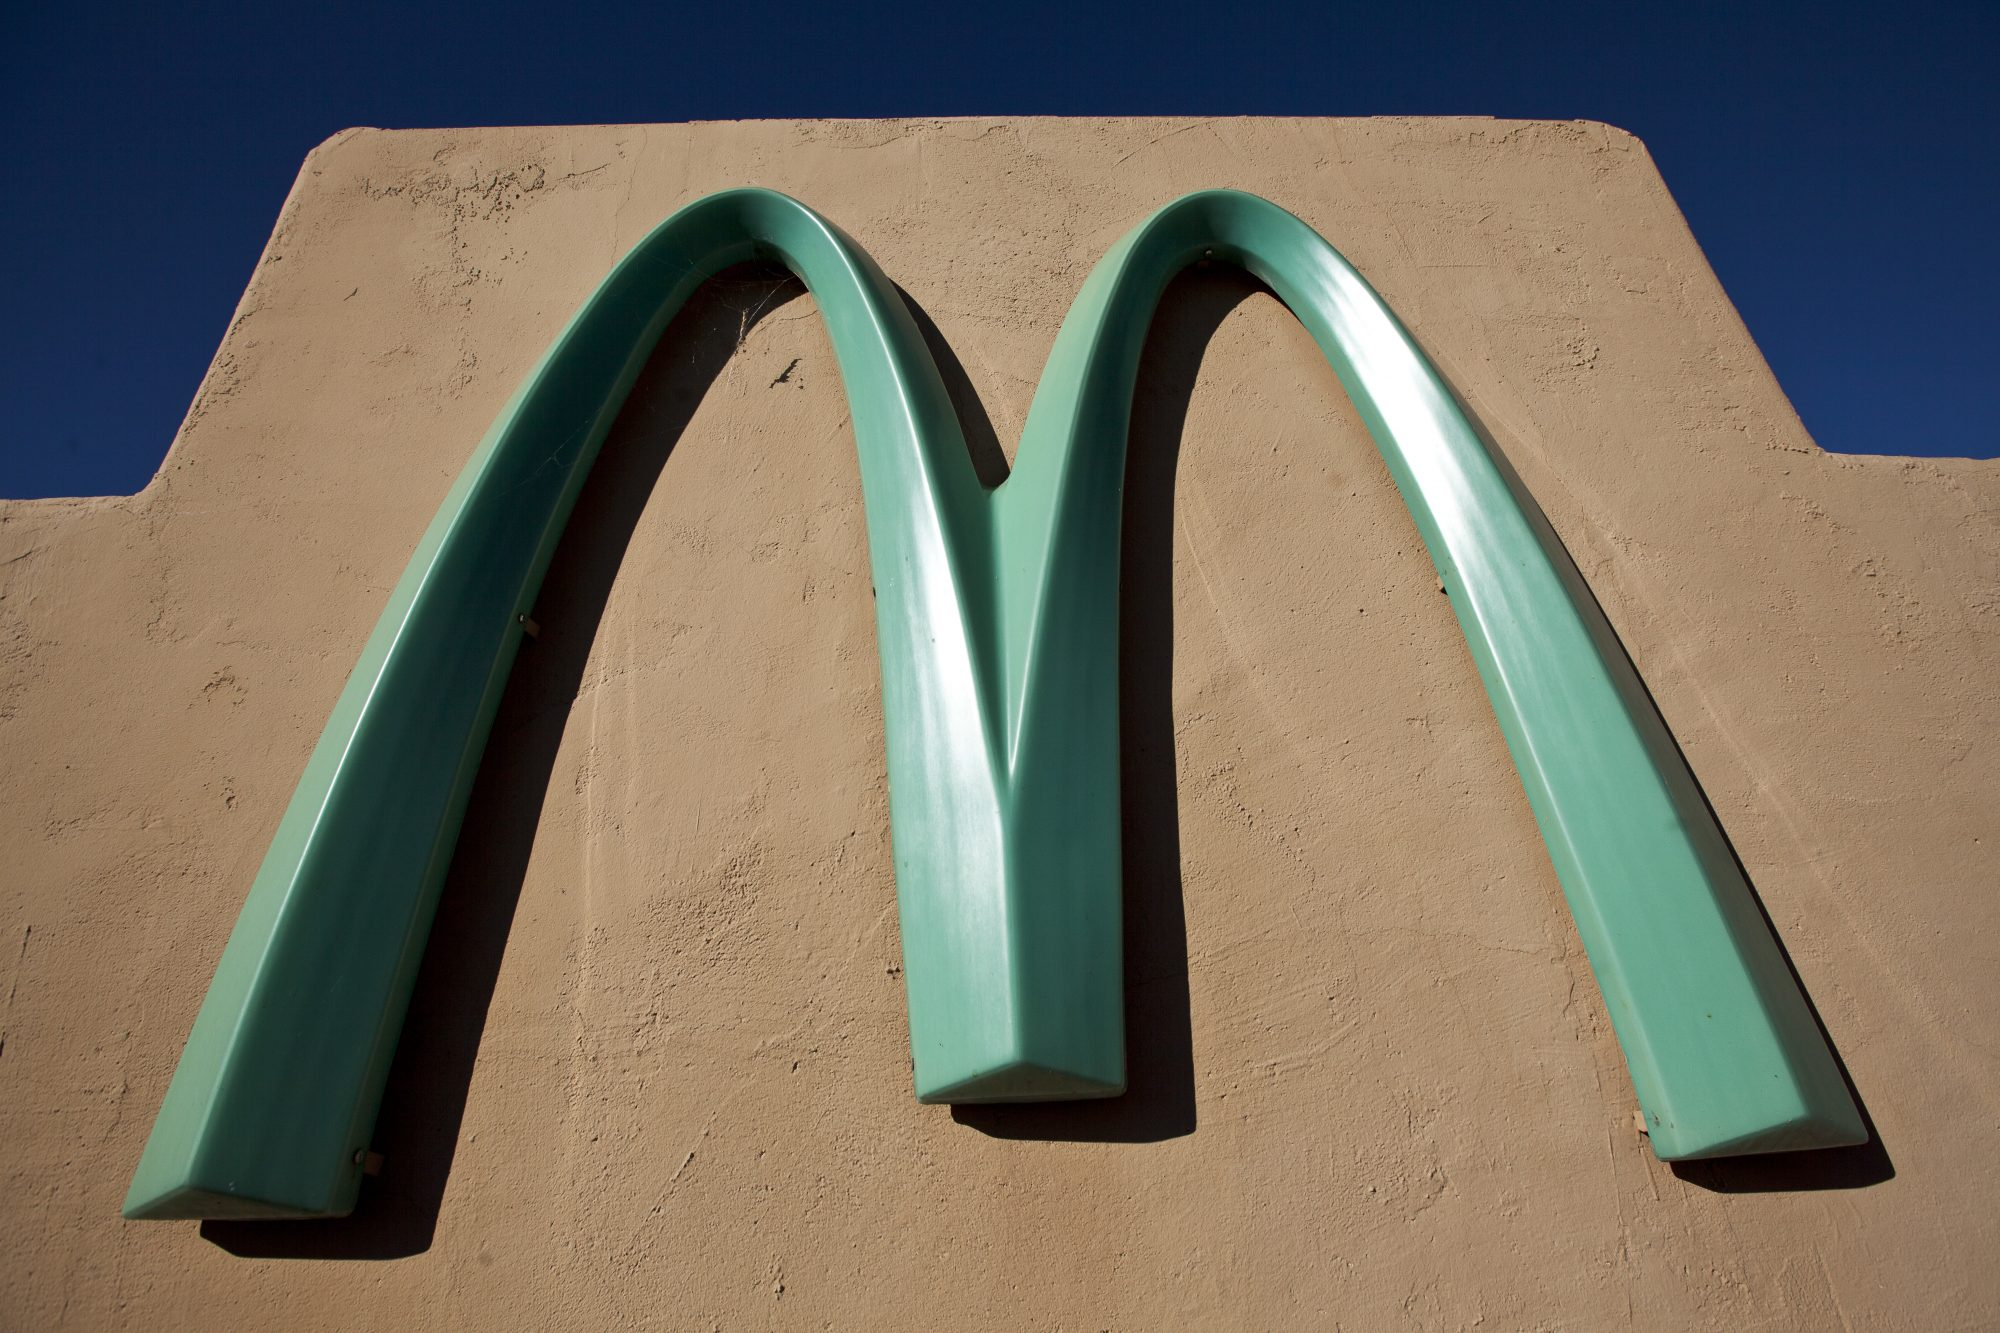 McDonald's Turquoise Arches